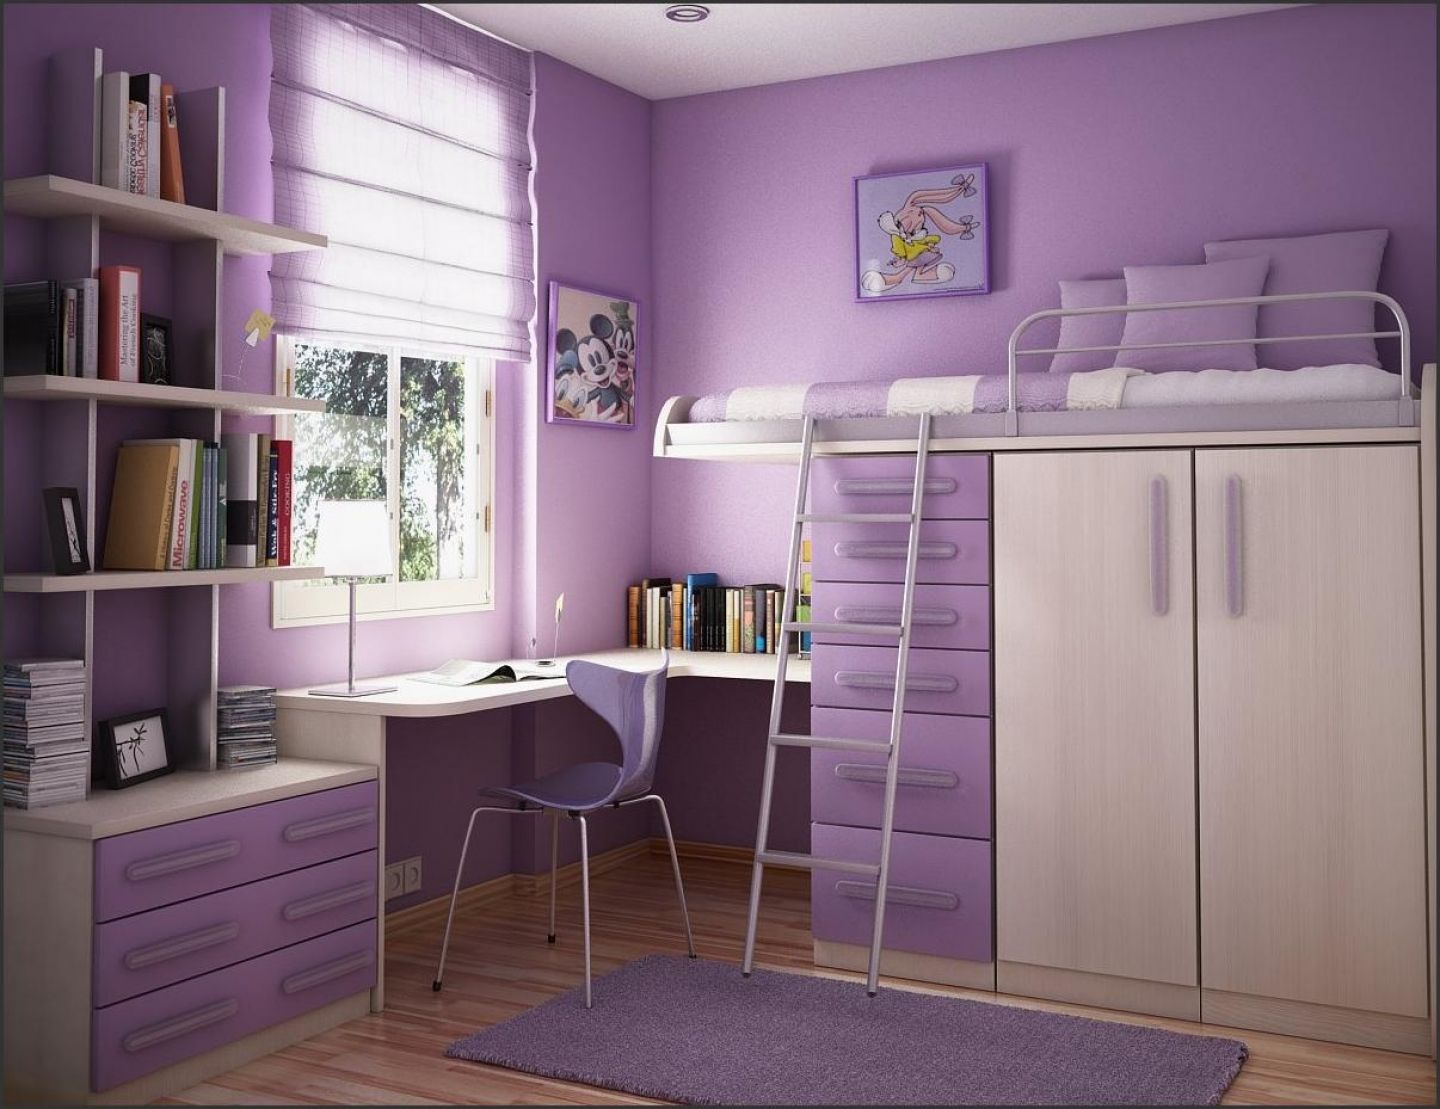 Bedroom Decorating Ideas Purple Walls how to pick top class bedrooms designs | awesome home decoration